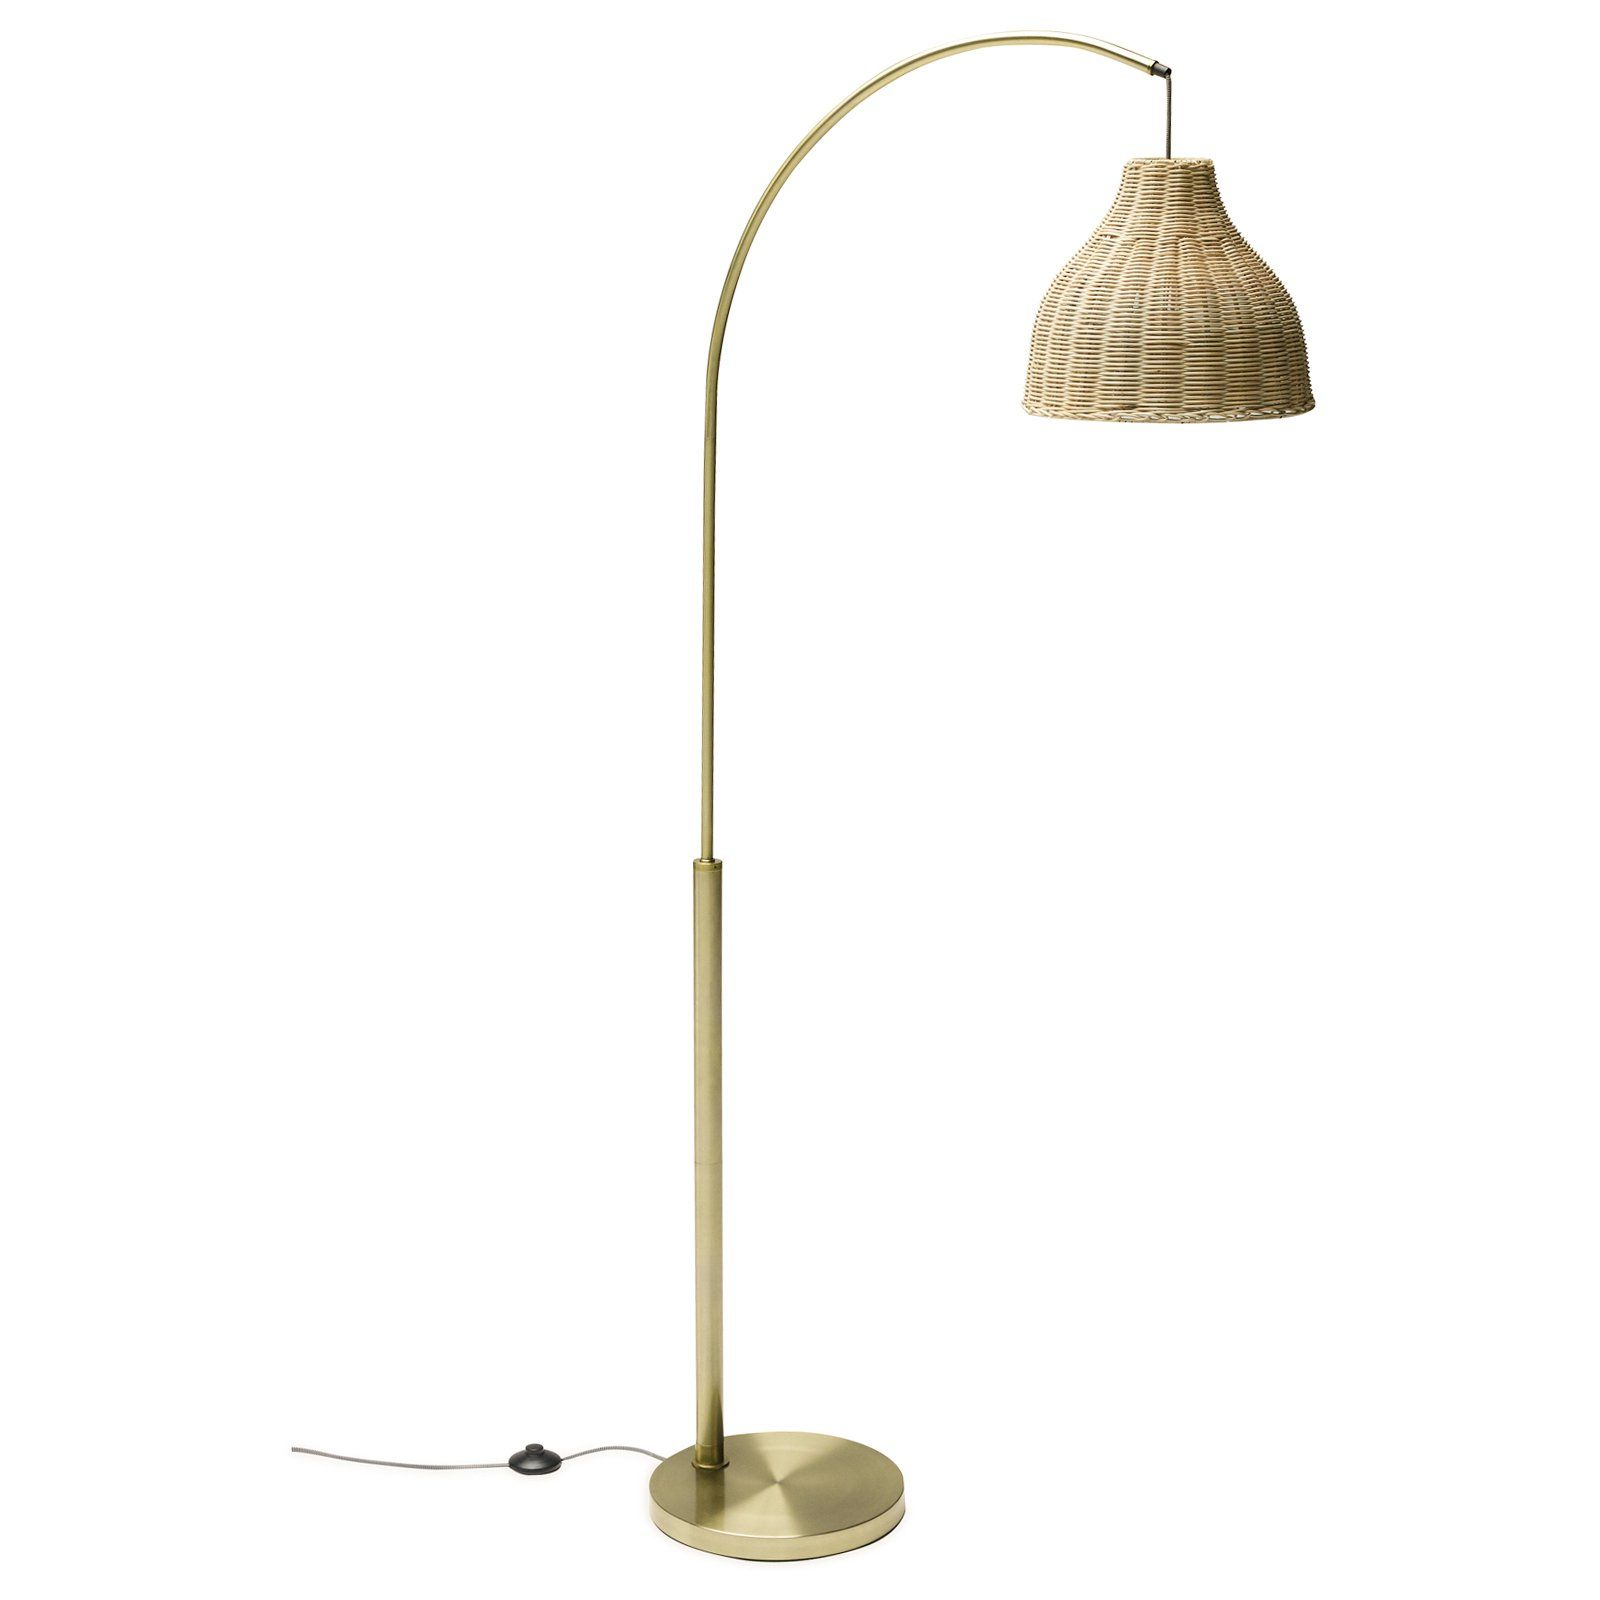 Antique Brass Arch Floor Lamp With Rattan Shade By Drew Barrymore Flower Home In 2020 Arched Floor Lamp Rattan Floor Lamp Floor Lamp